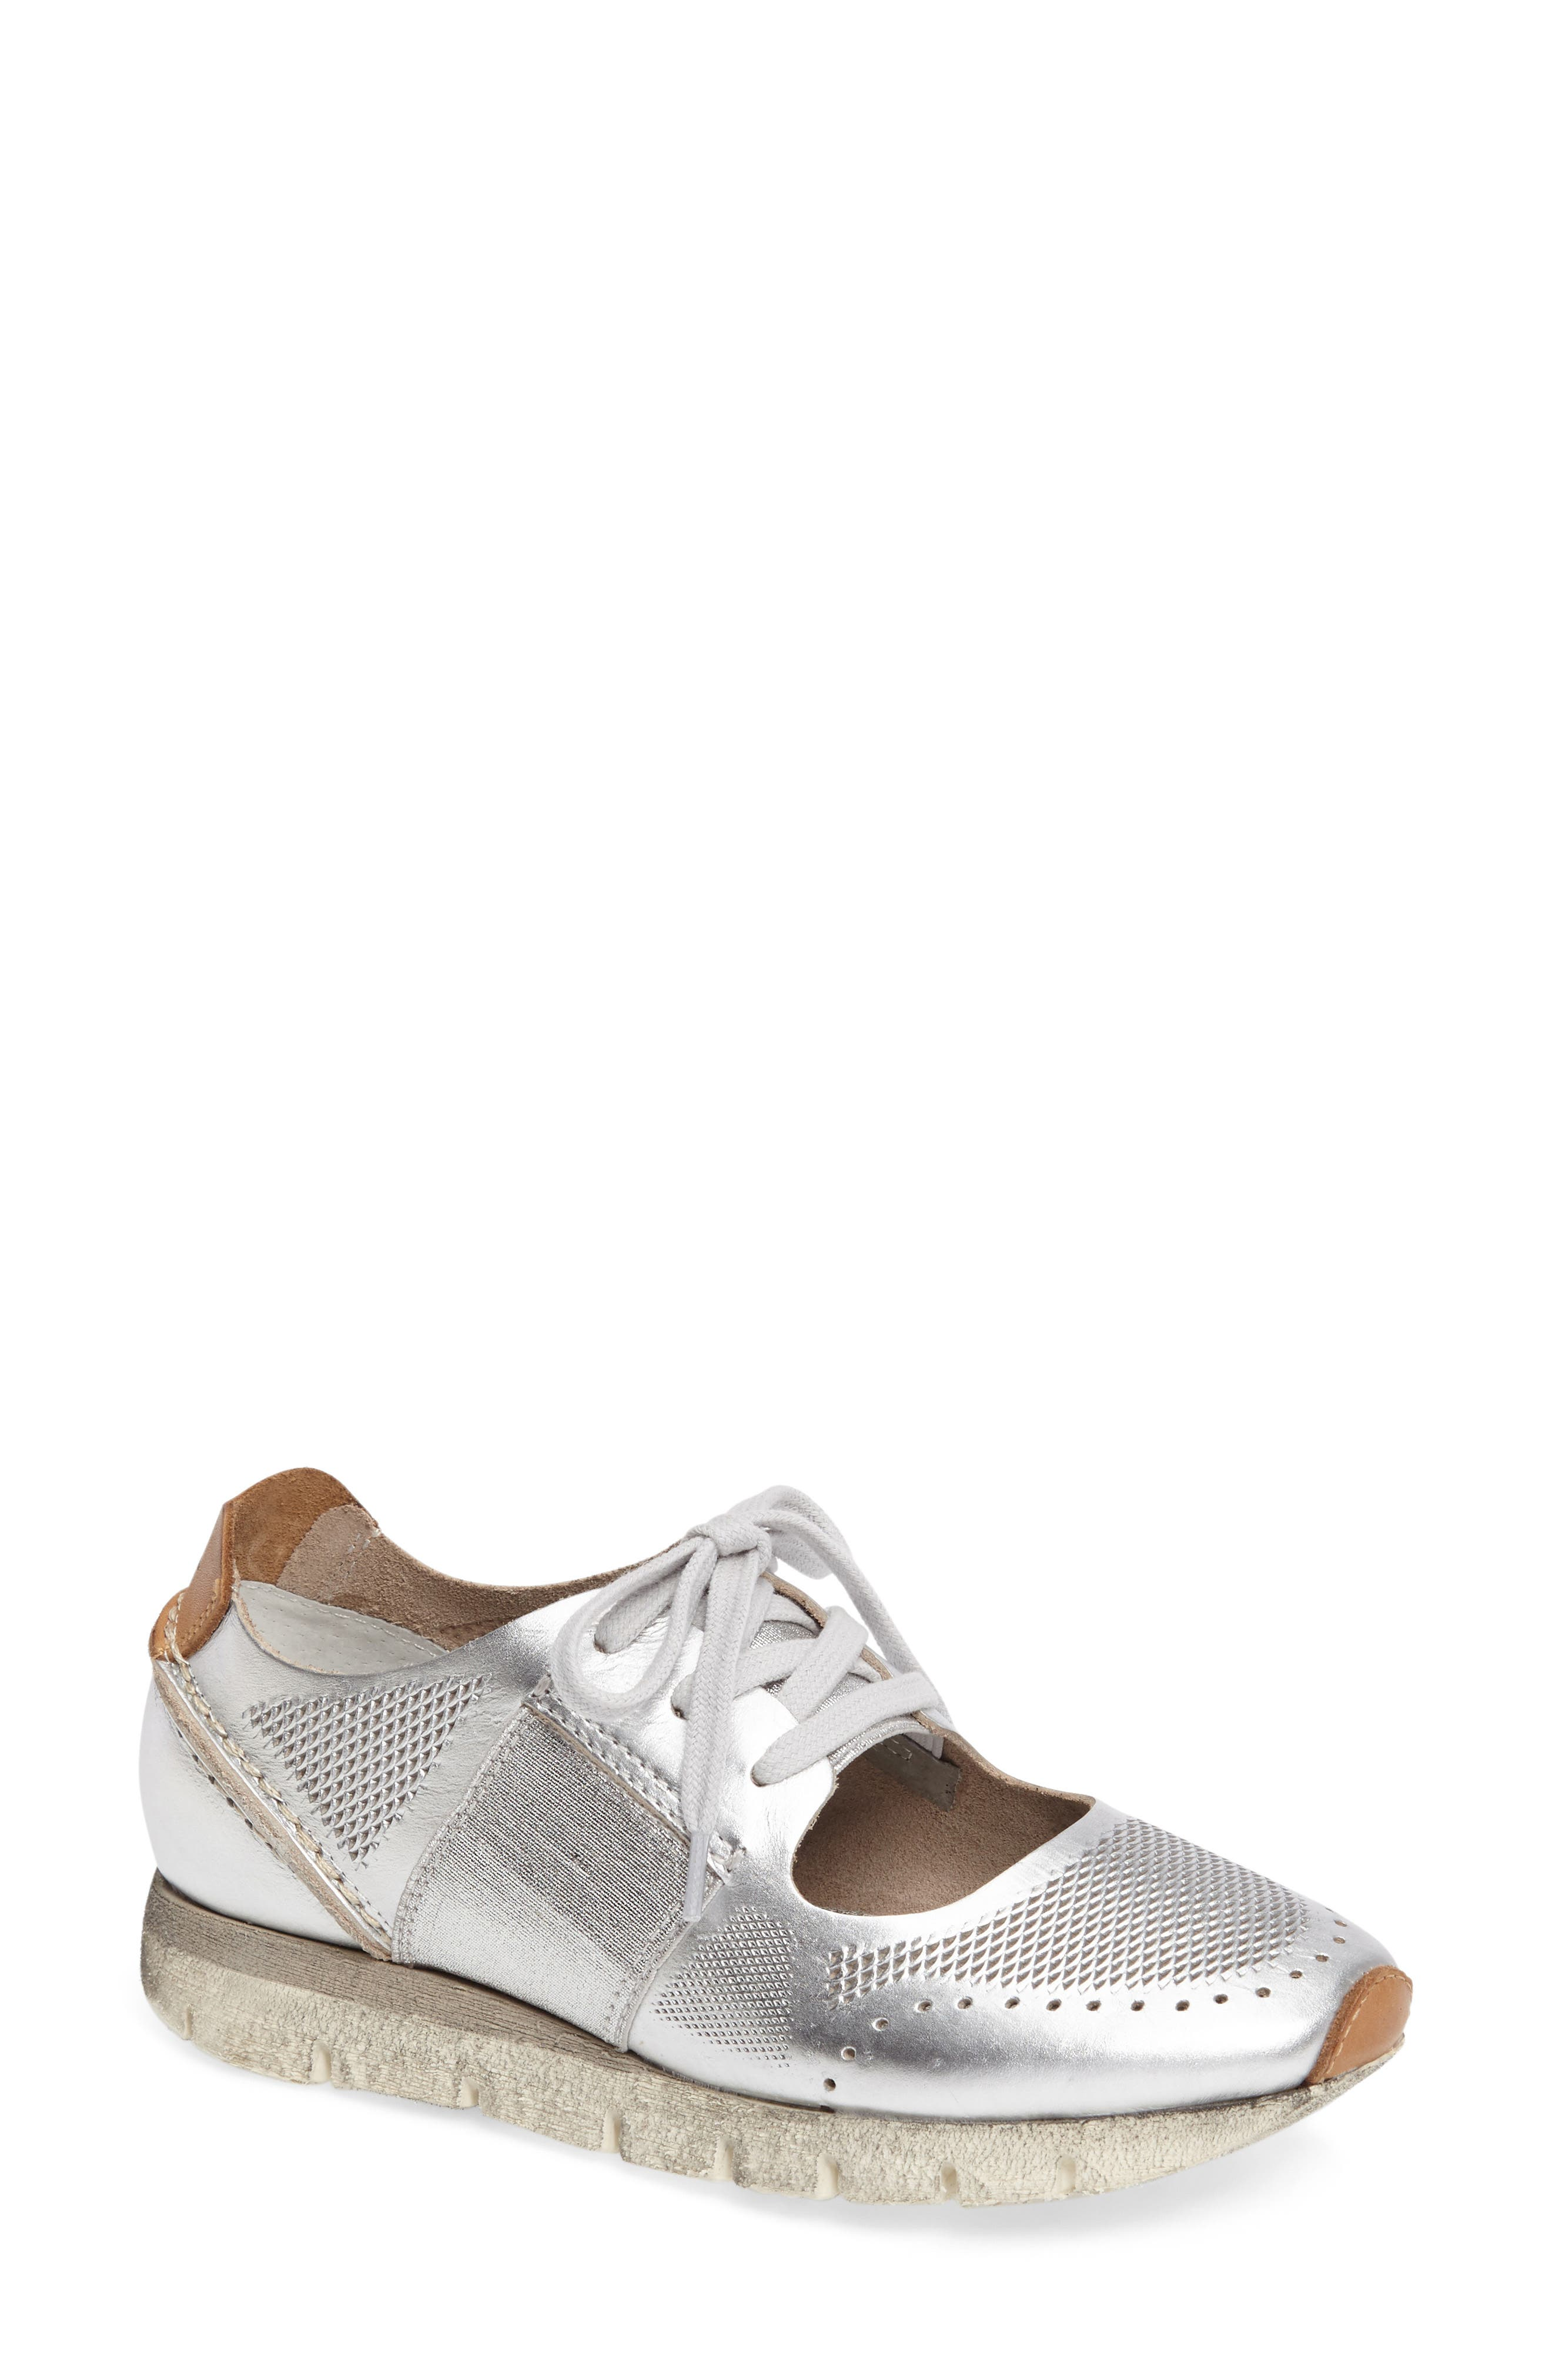 Star Dust Cutout Sneaker,                         Main,                         color, Silver Leather